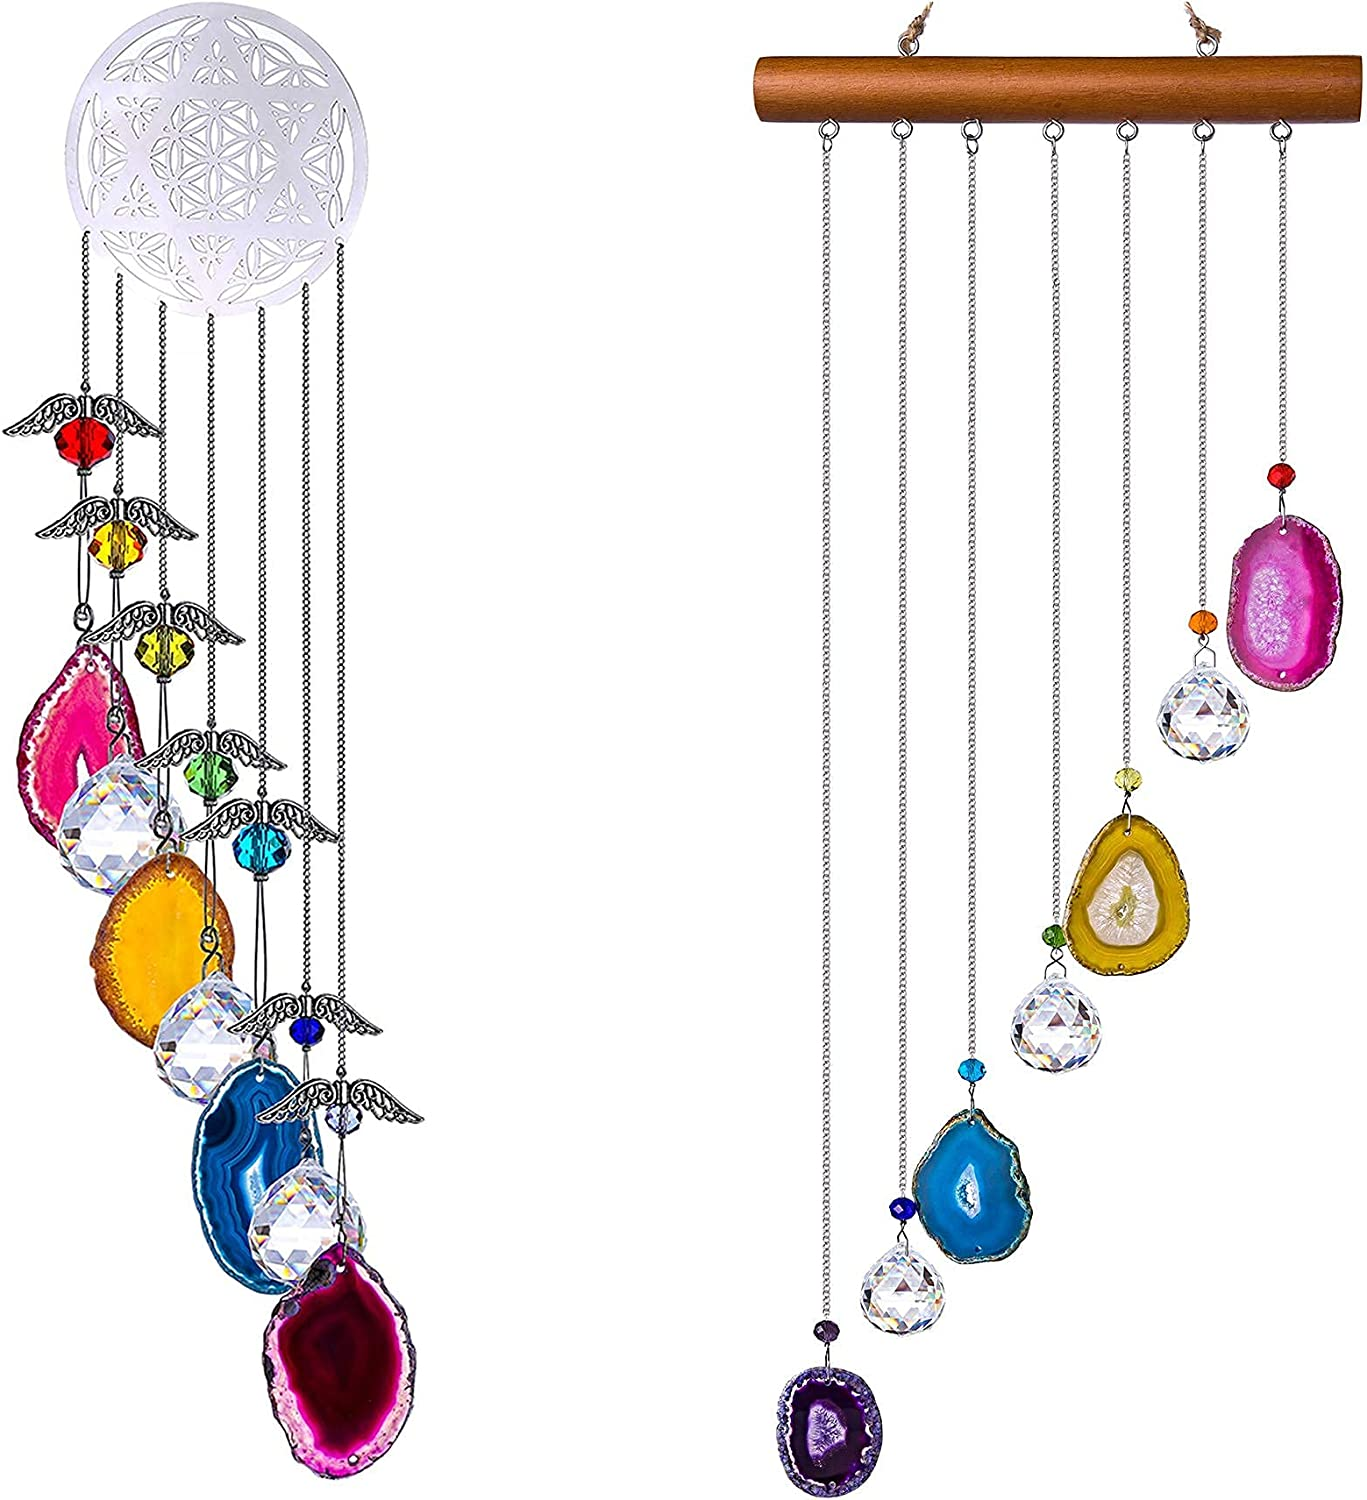 Hanging Crystal Suncatcher Prism Rainbow Natu with Maker Tampa Mall New Orleans Mall Pendant